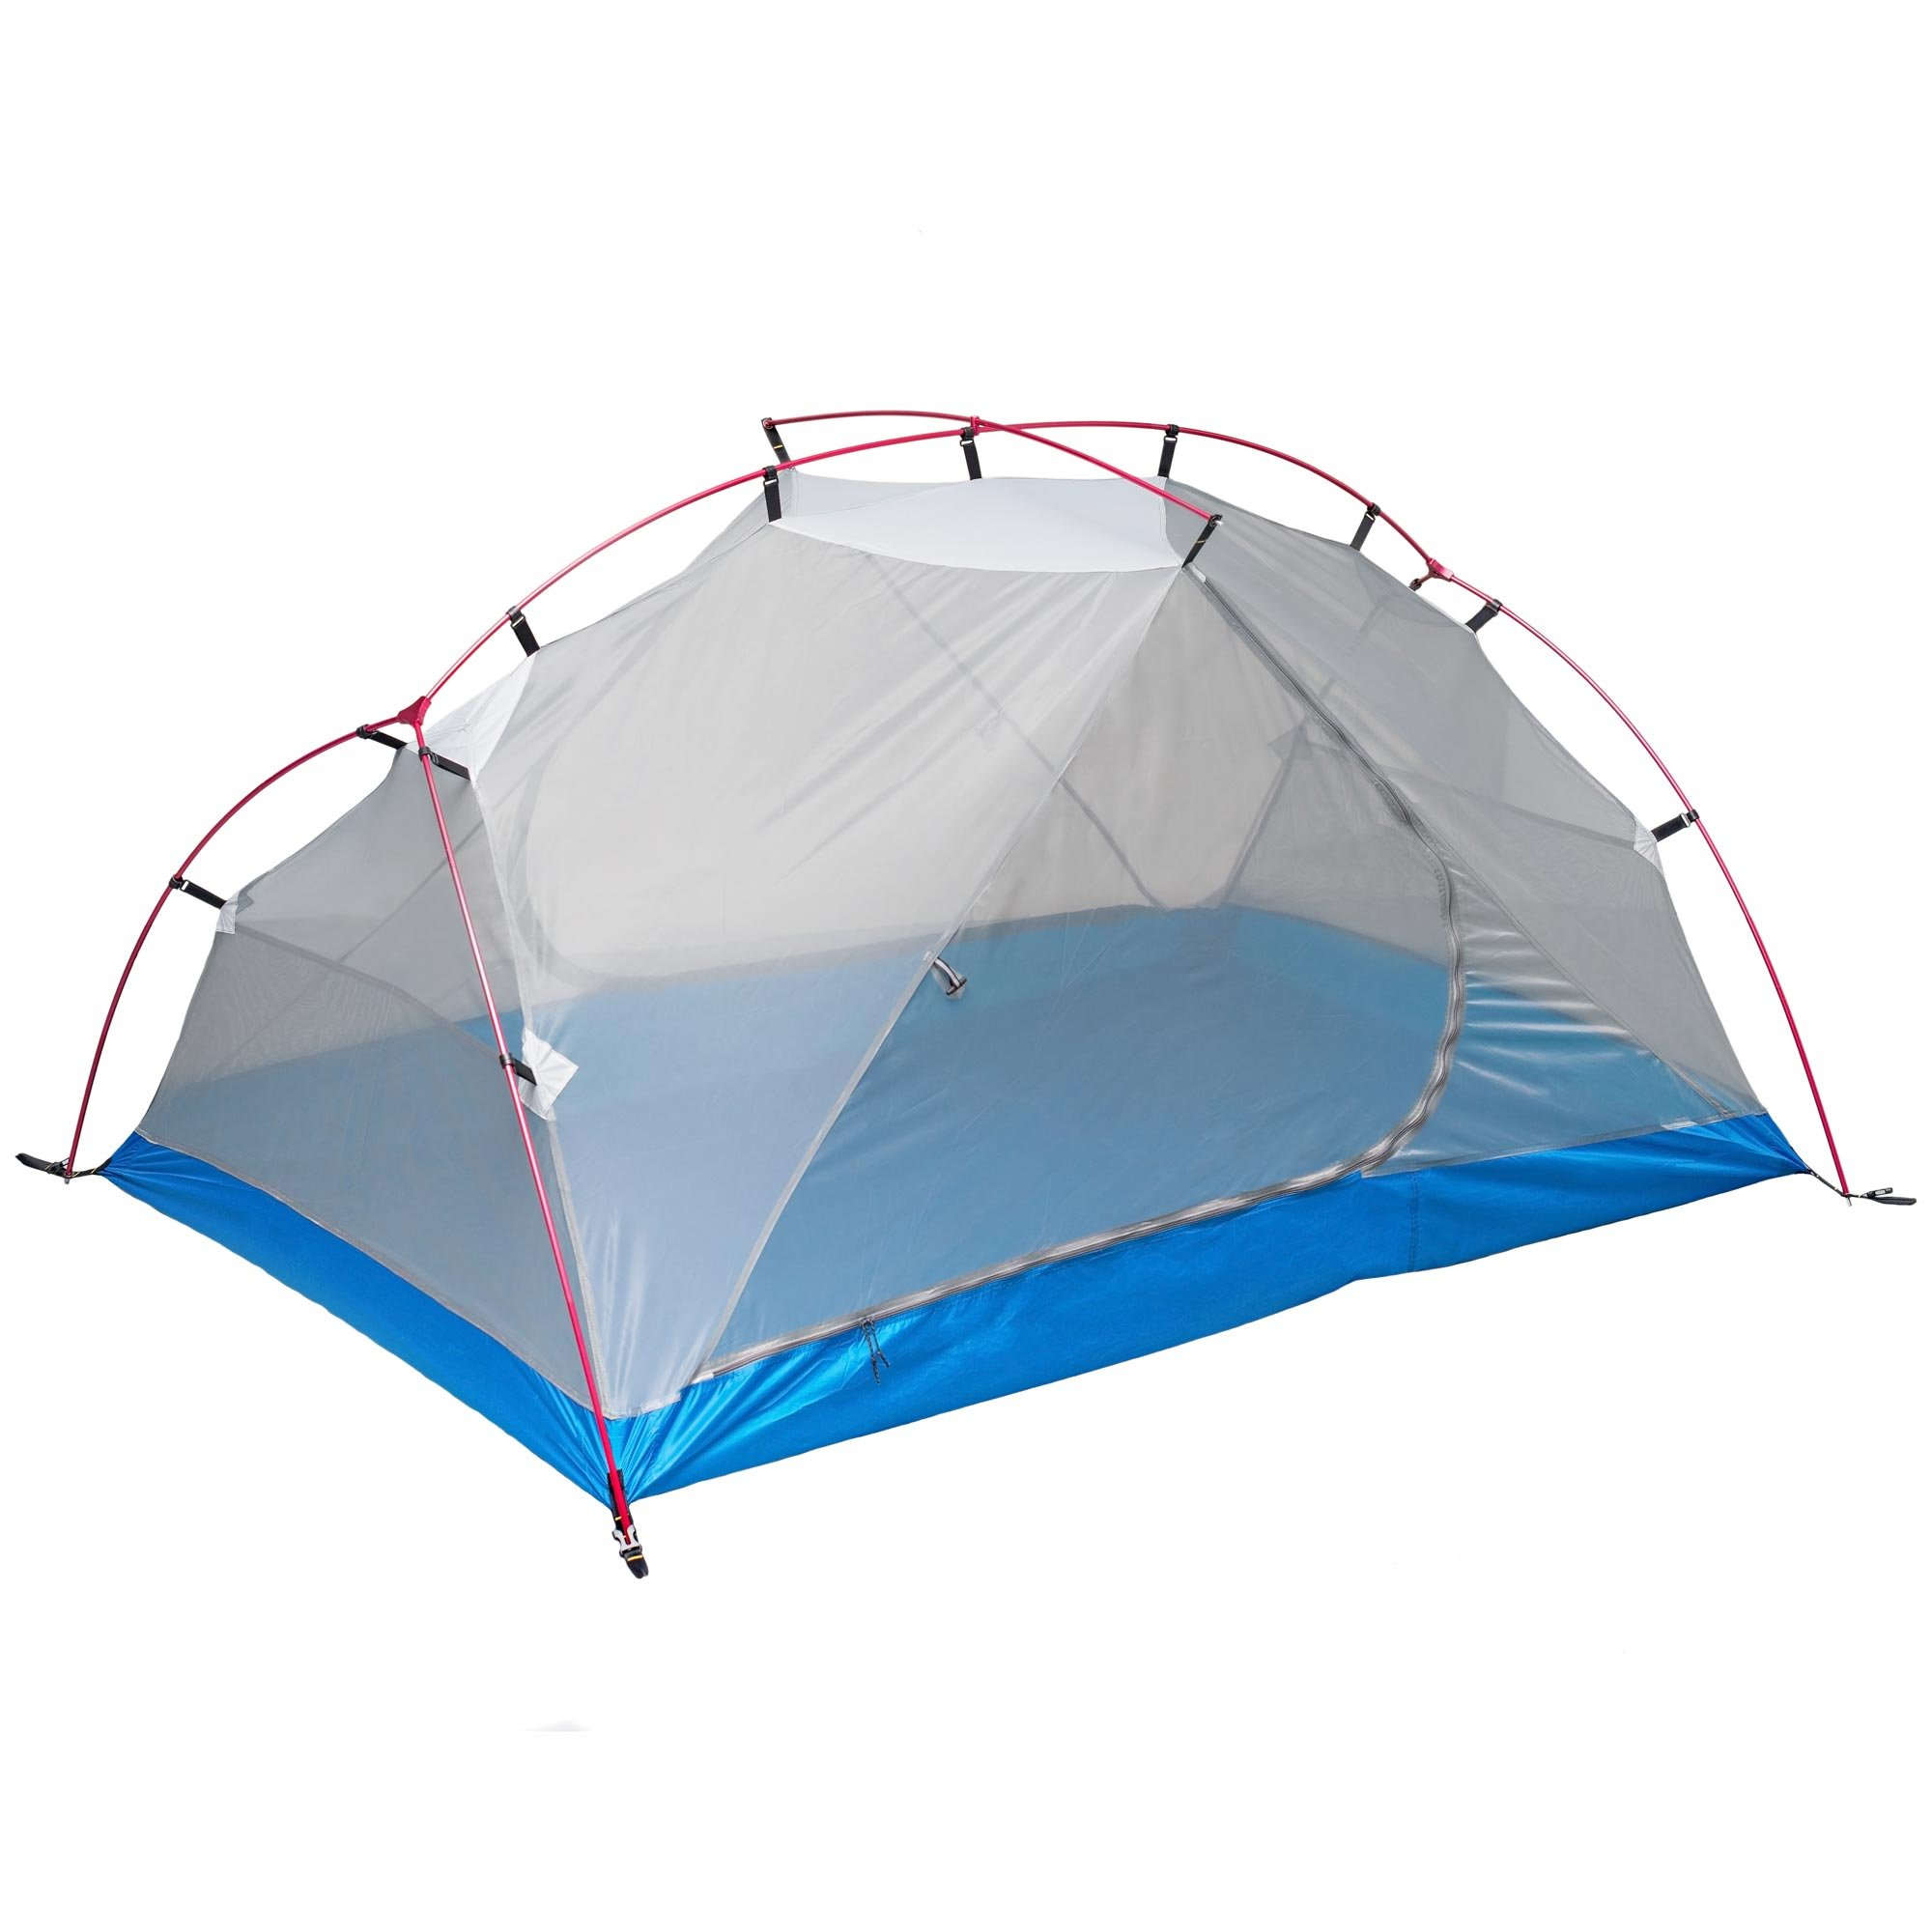 Zion 2P Two Person Lightweight Tent and Footprint - Perfect for Backpacking, Kayaking, Camping and Bikepacking by Paria Outdoor Products (Image #3)